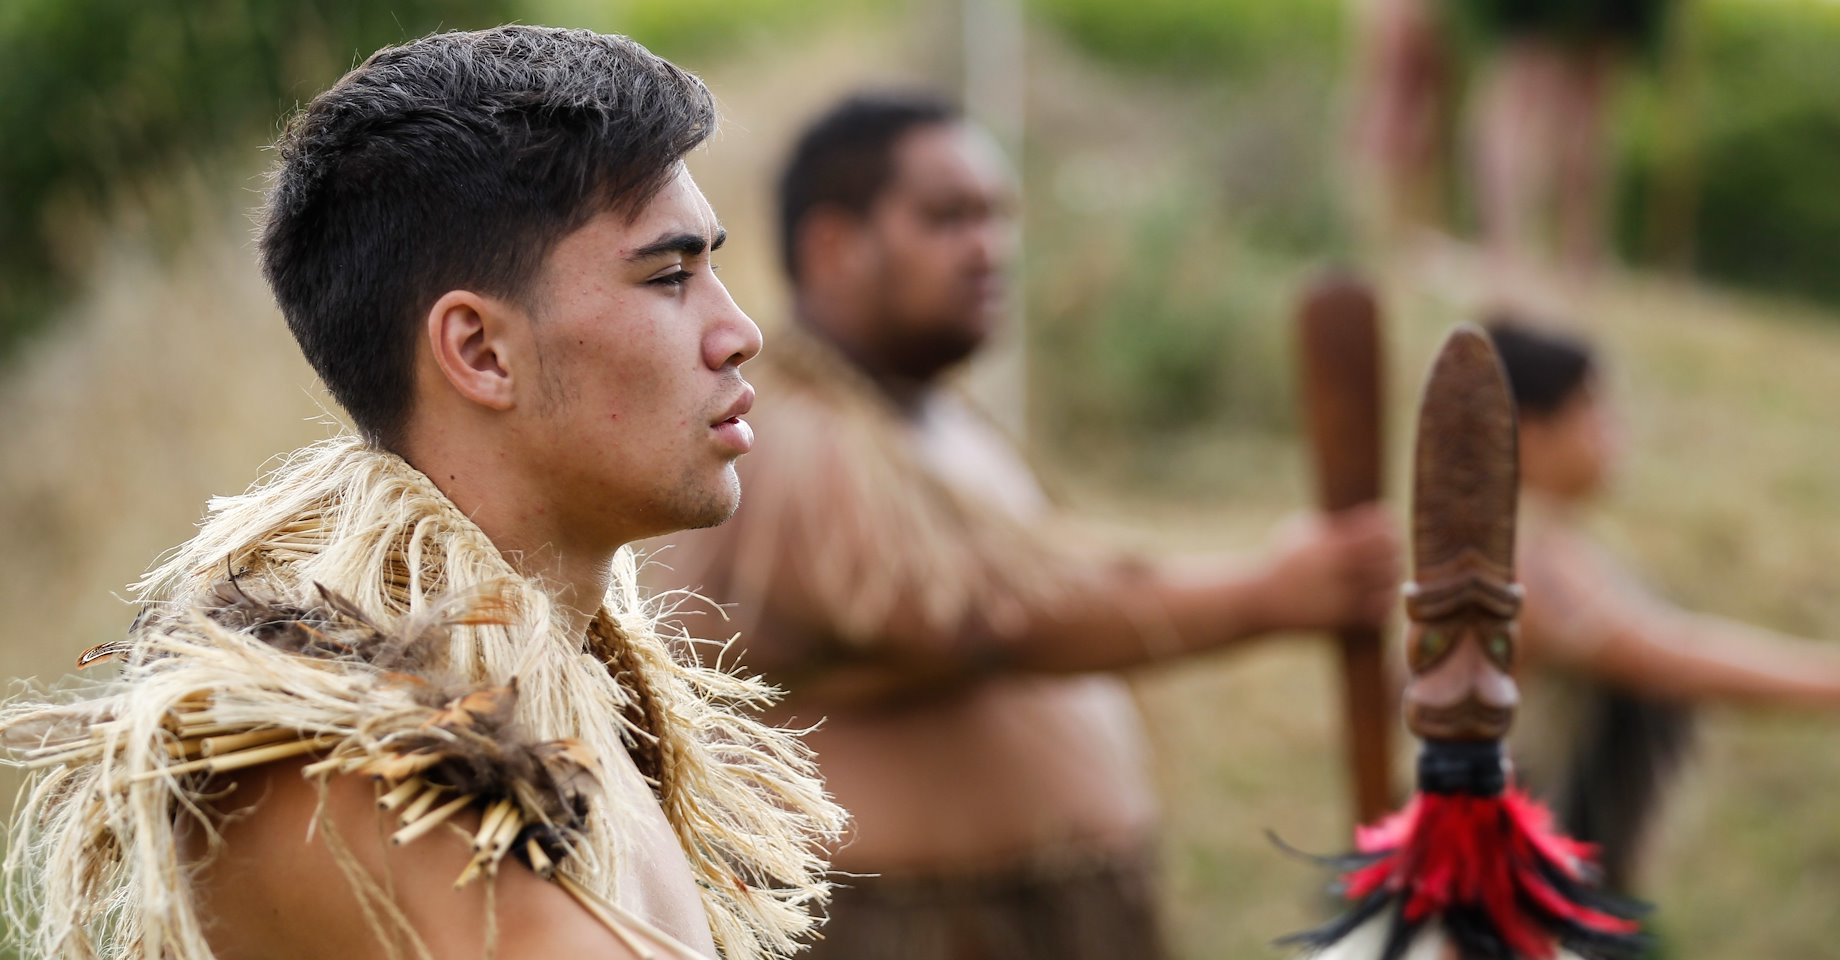 A young man reflects during the 150 year commemoration of the attack on Rangiaowhia in the Waikato War (1863–1864).